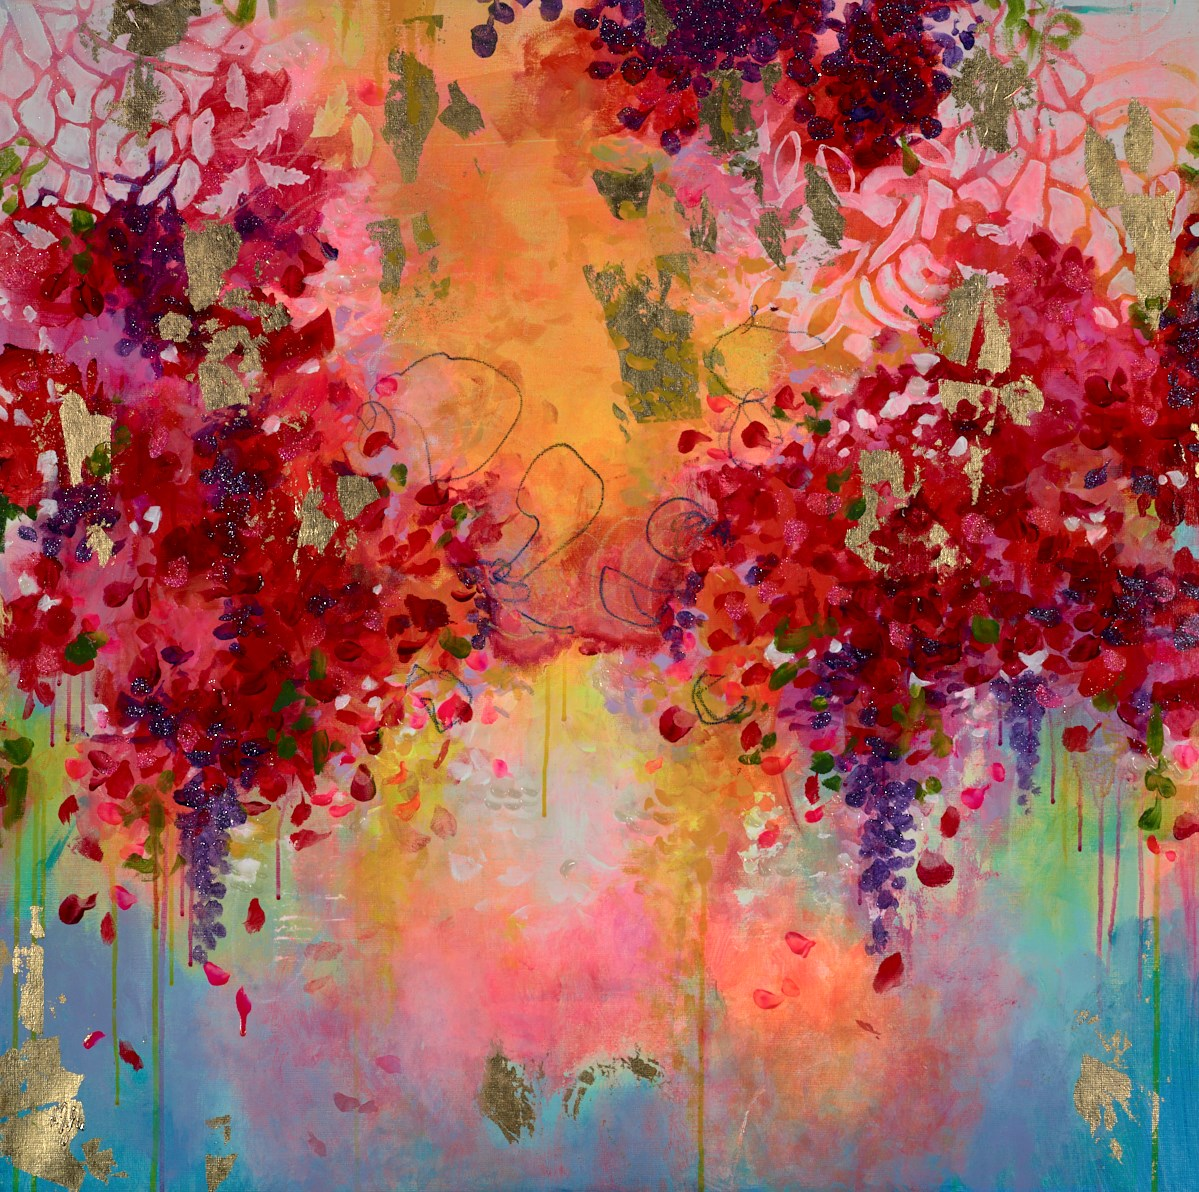 Gold Passion by amylee paris -  sized 39x39 inches. Available from Whitewall Galleries